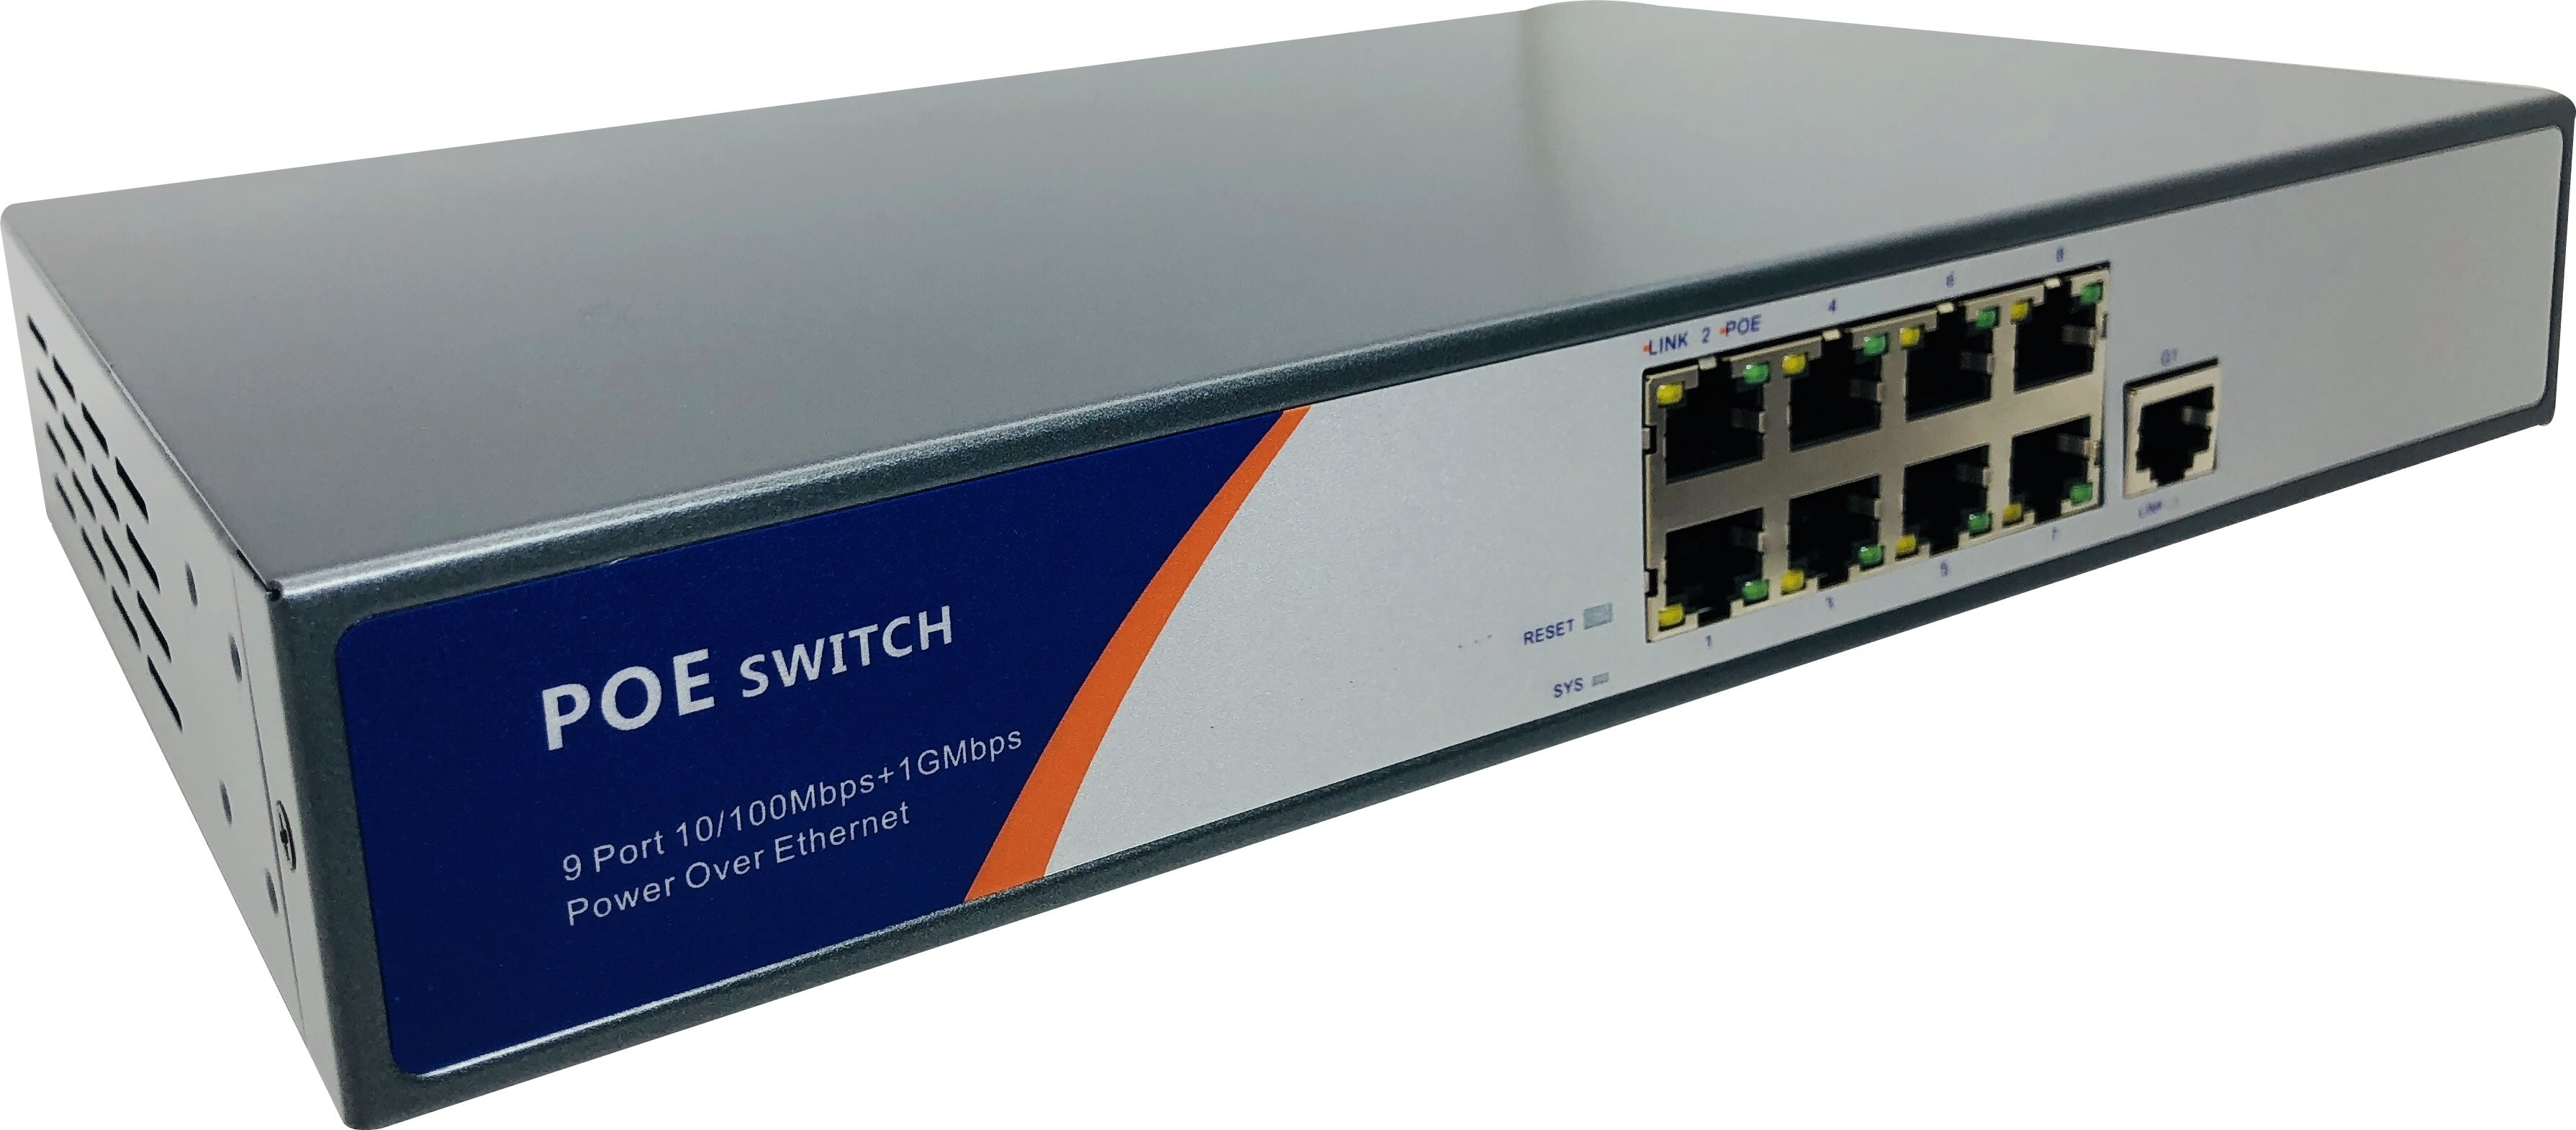 23-4808 8-Port PoE Switch